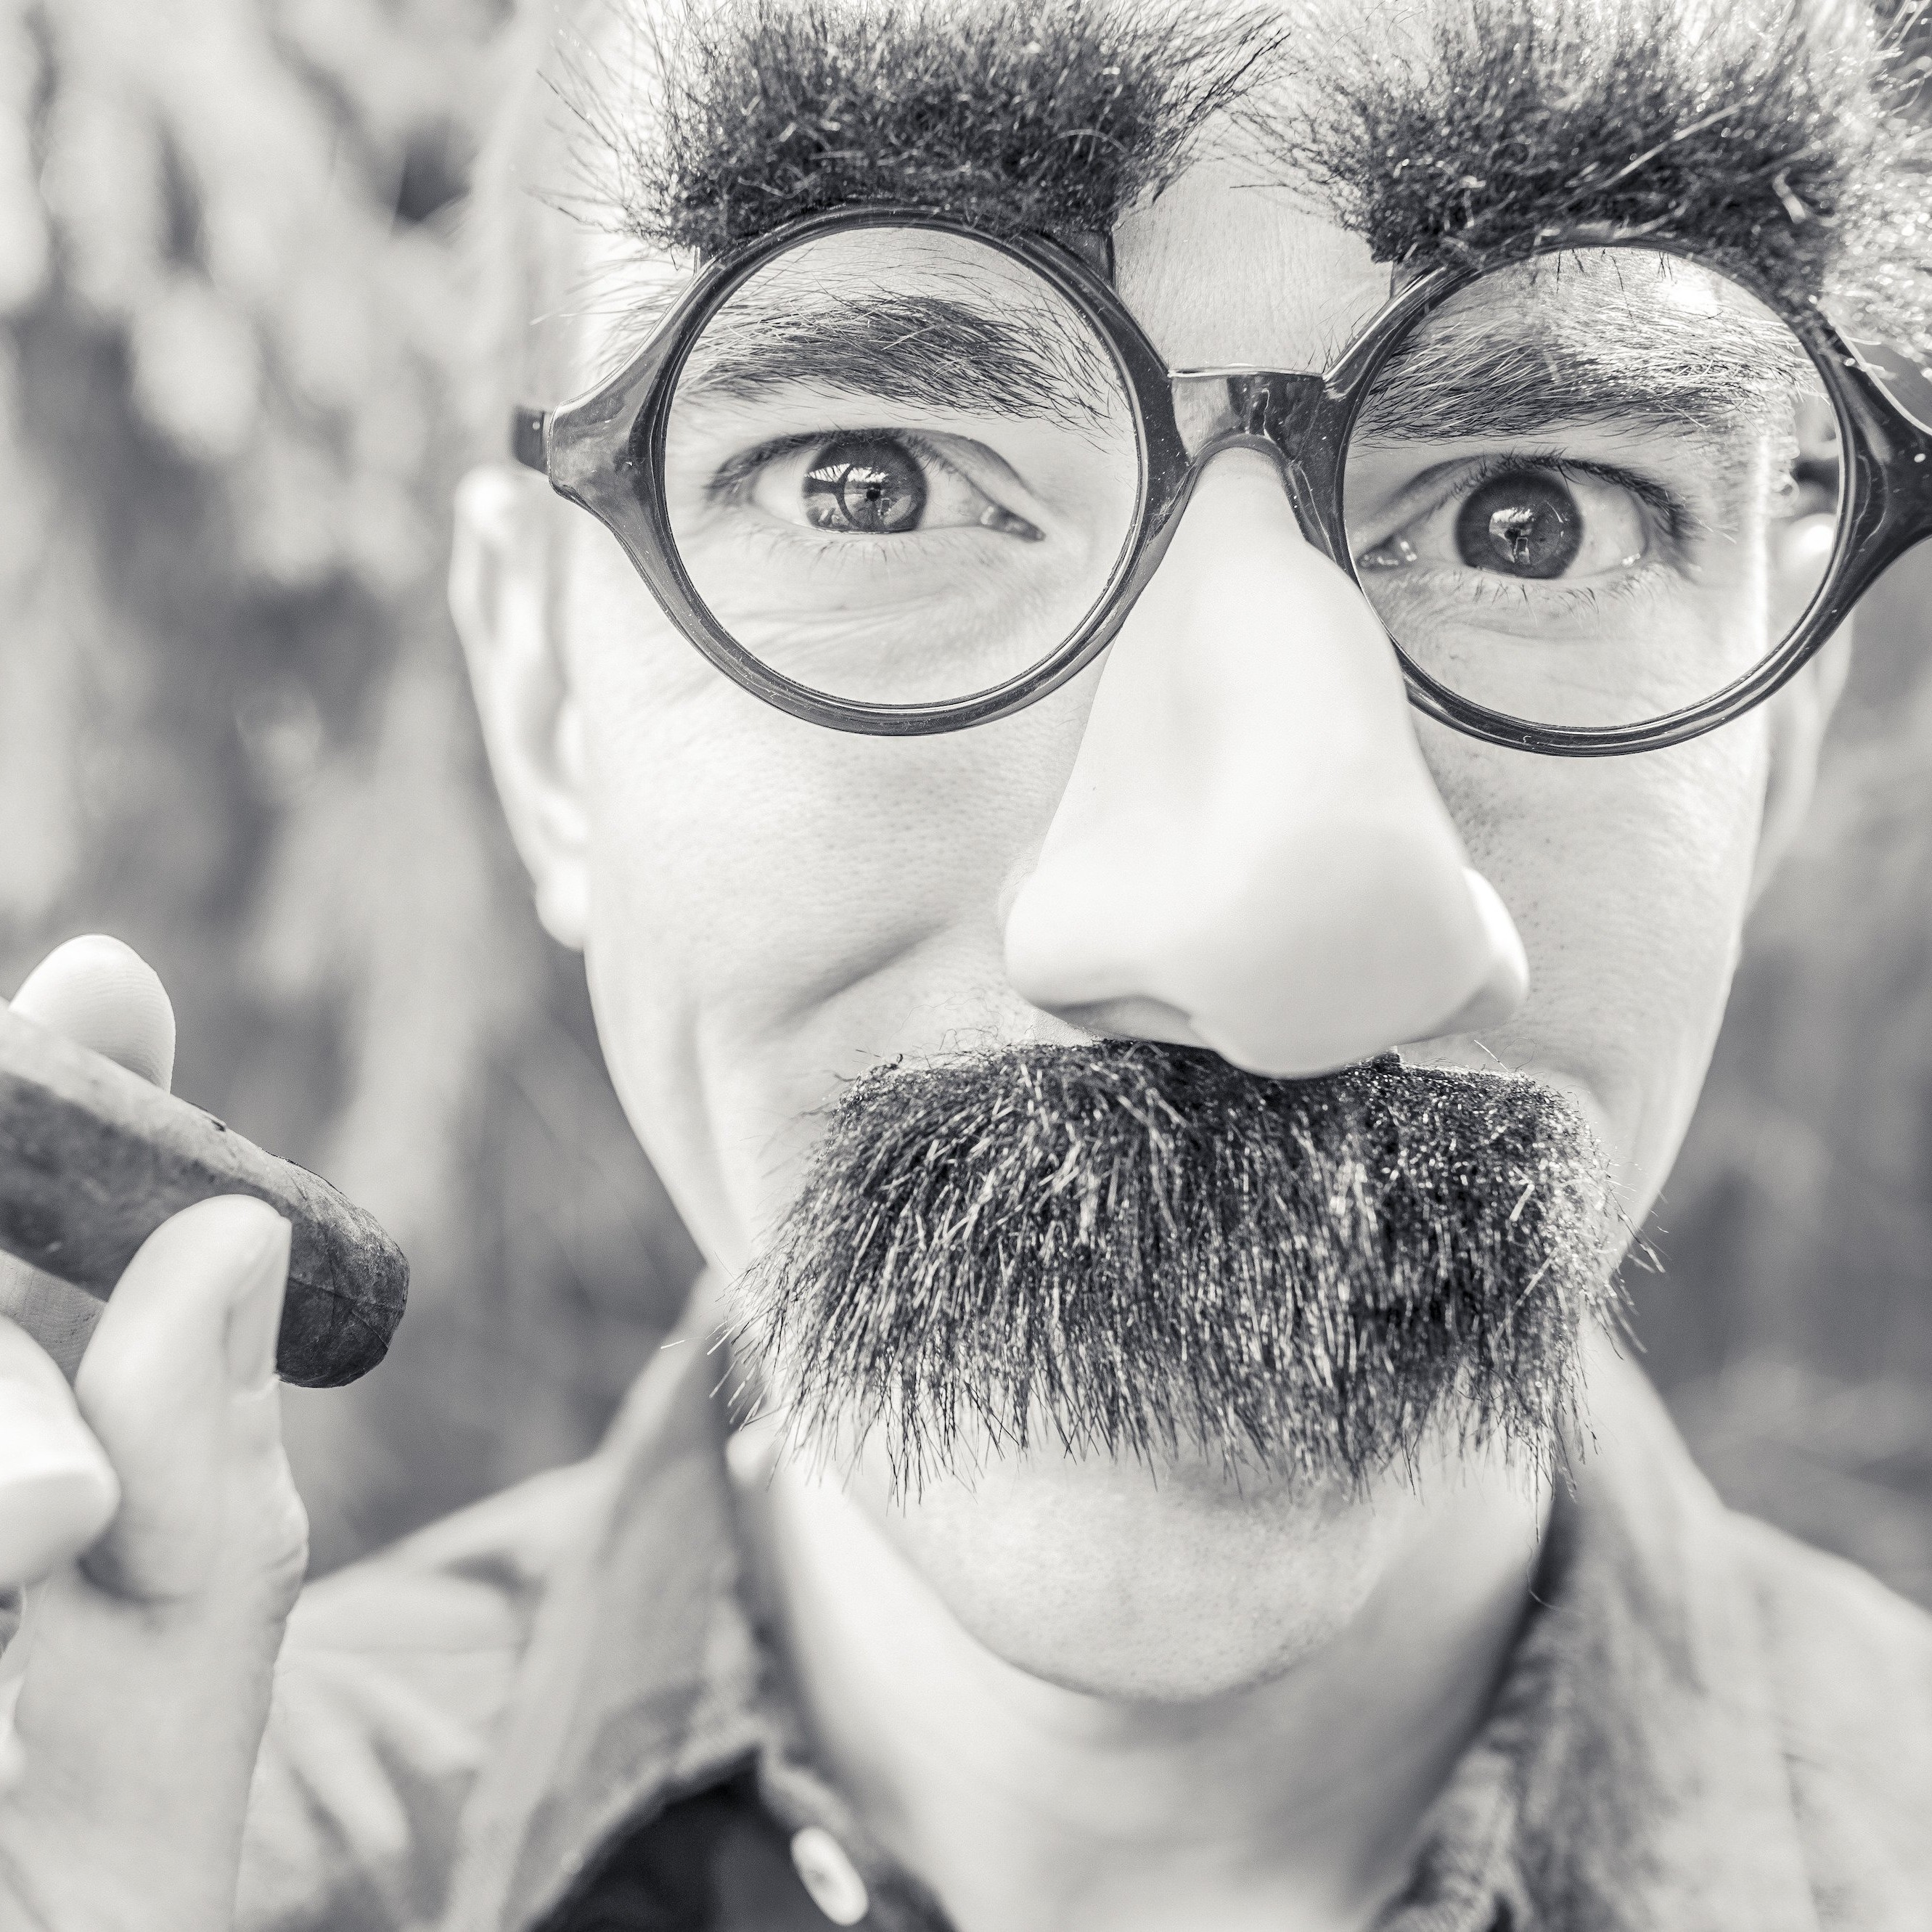 Groucho Glasses Man Wallpaper for Apple iPhone 6 Plus